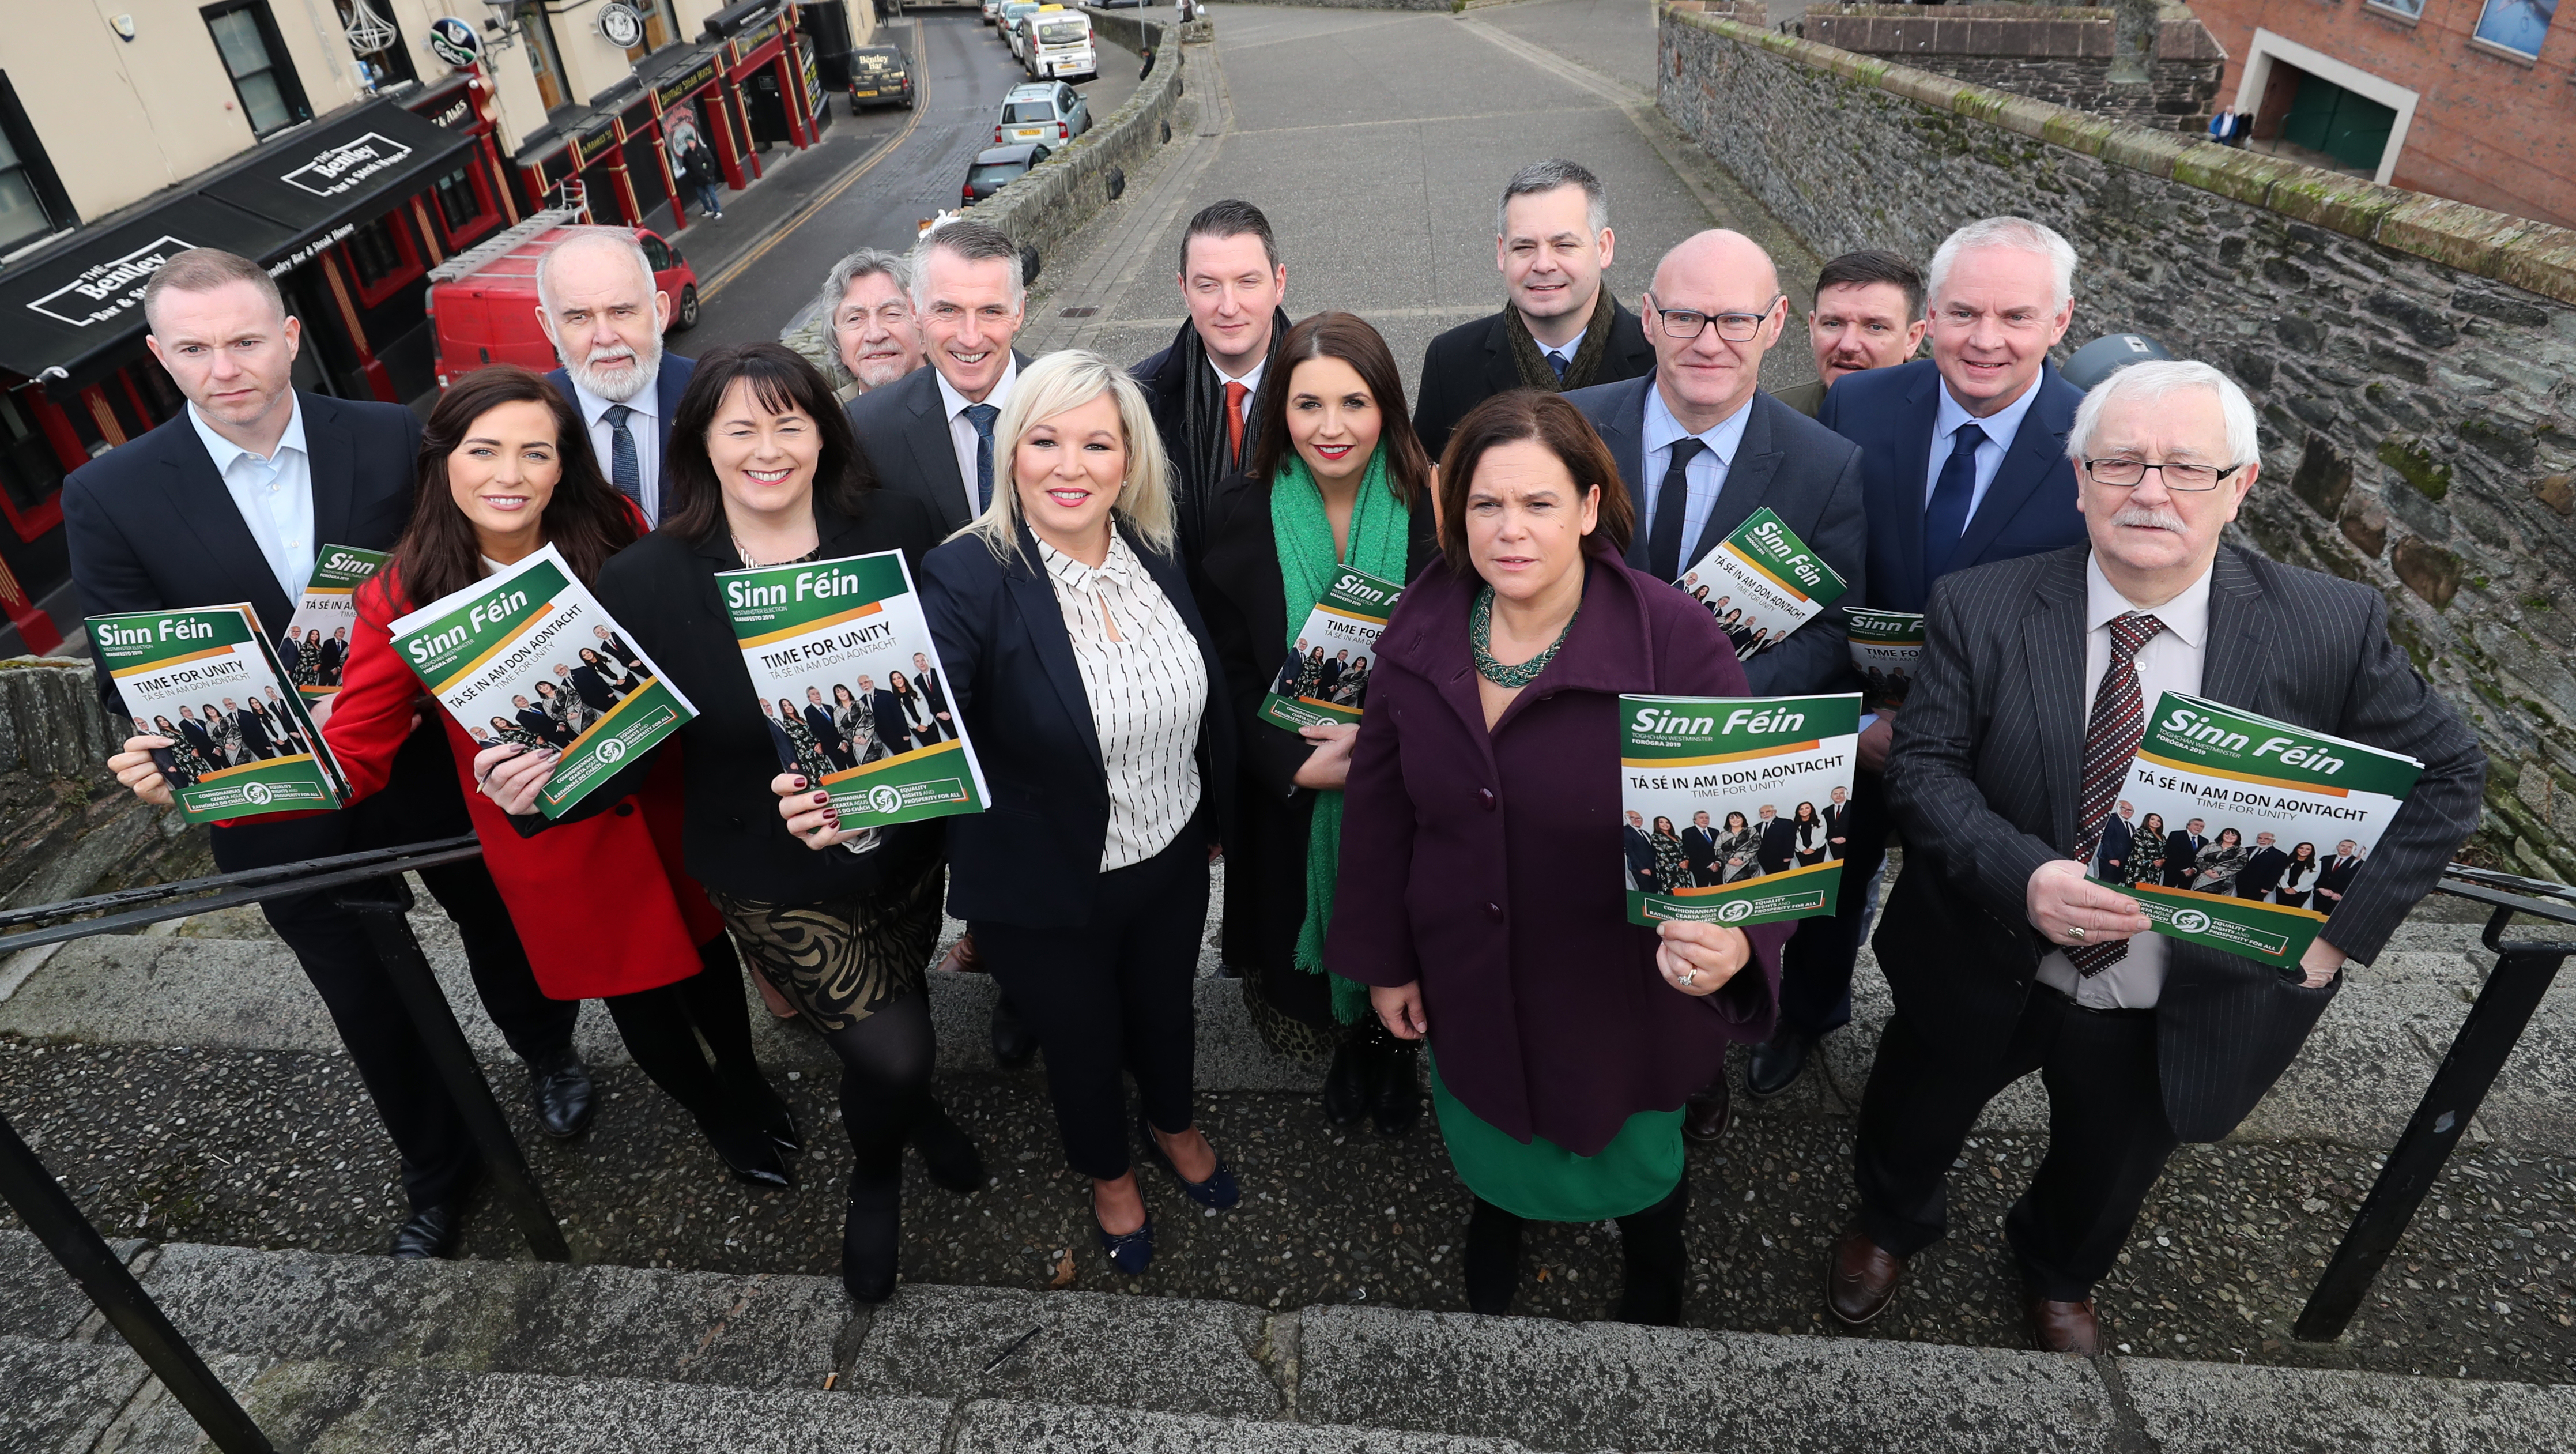 Sinn Fein's Leaders Mary Lou McDonald (centre right) and Michellle O'Neill (centre left) with some of their General Election candidates at the launch of the party's manifesto at the Playhouse Theater in Londonderry.